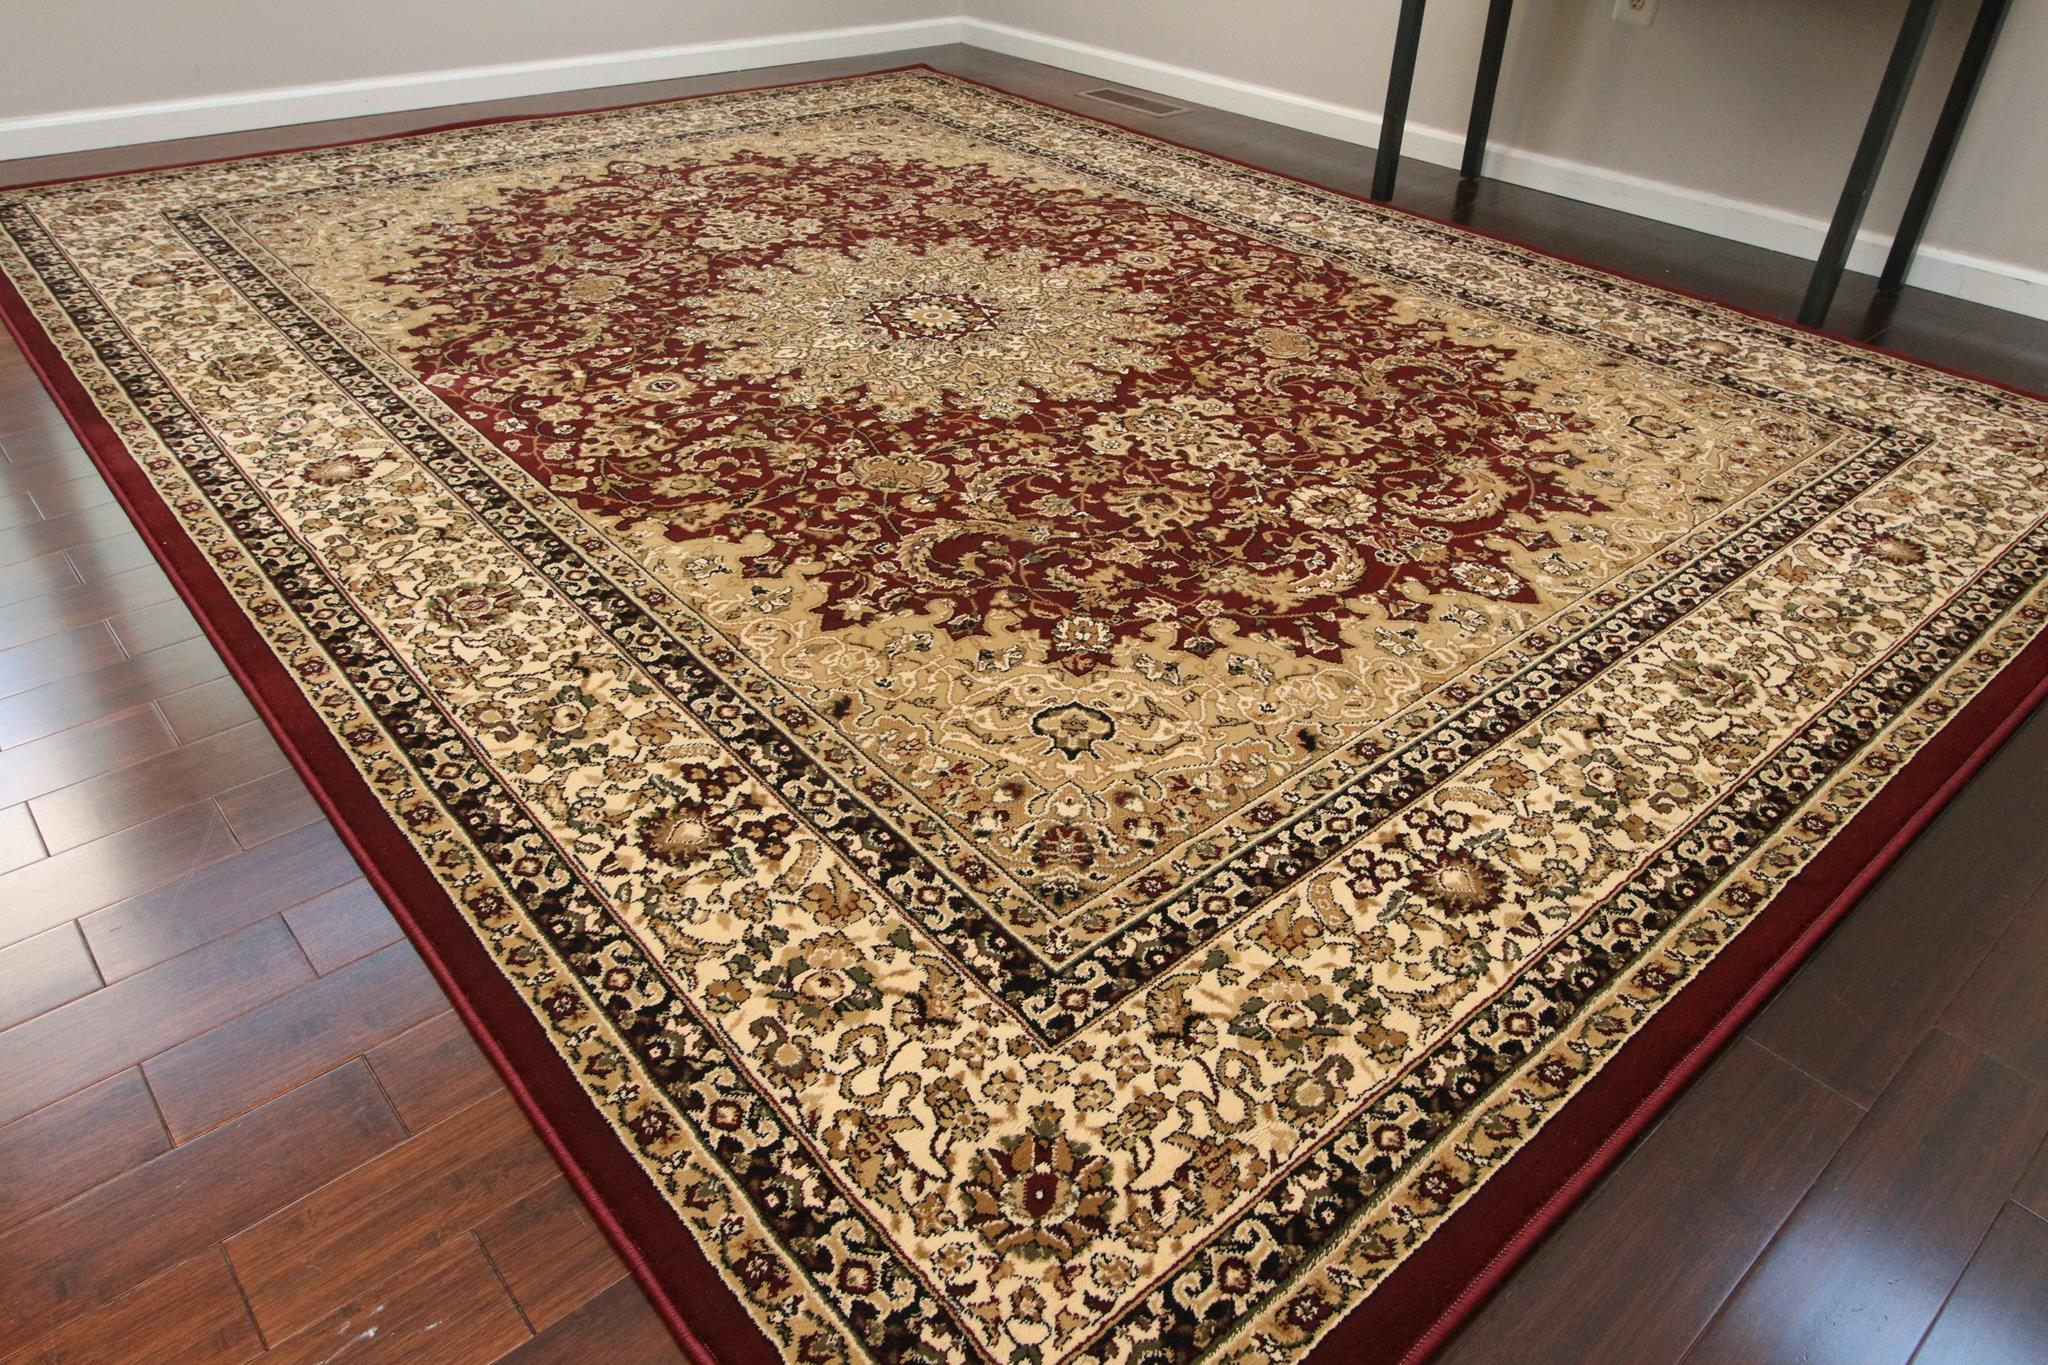 Clearance area rugs clearance area rugs | area rugs | discount rugs | superior rugs OCPSYGJ